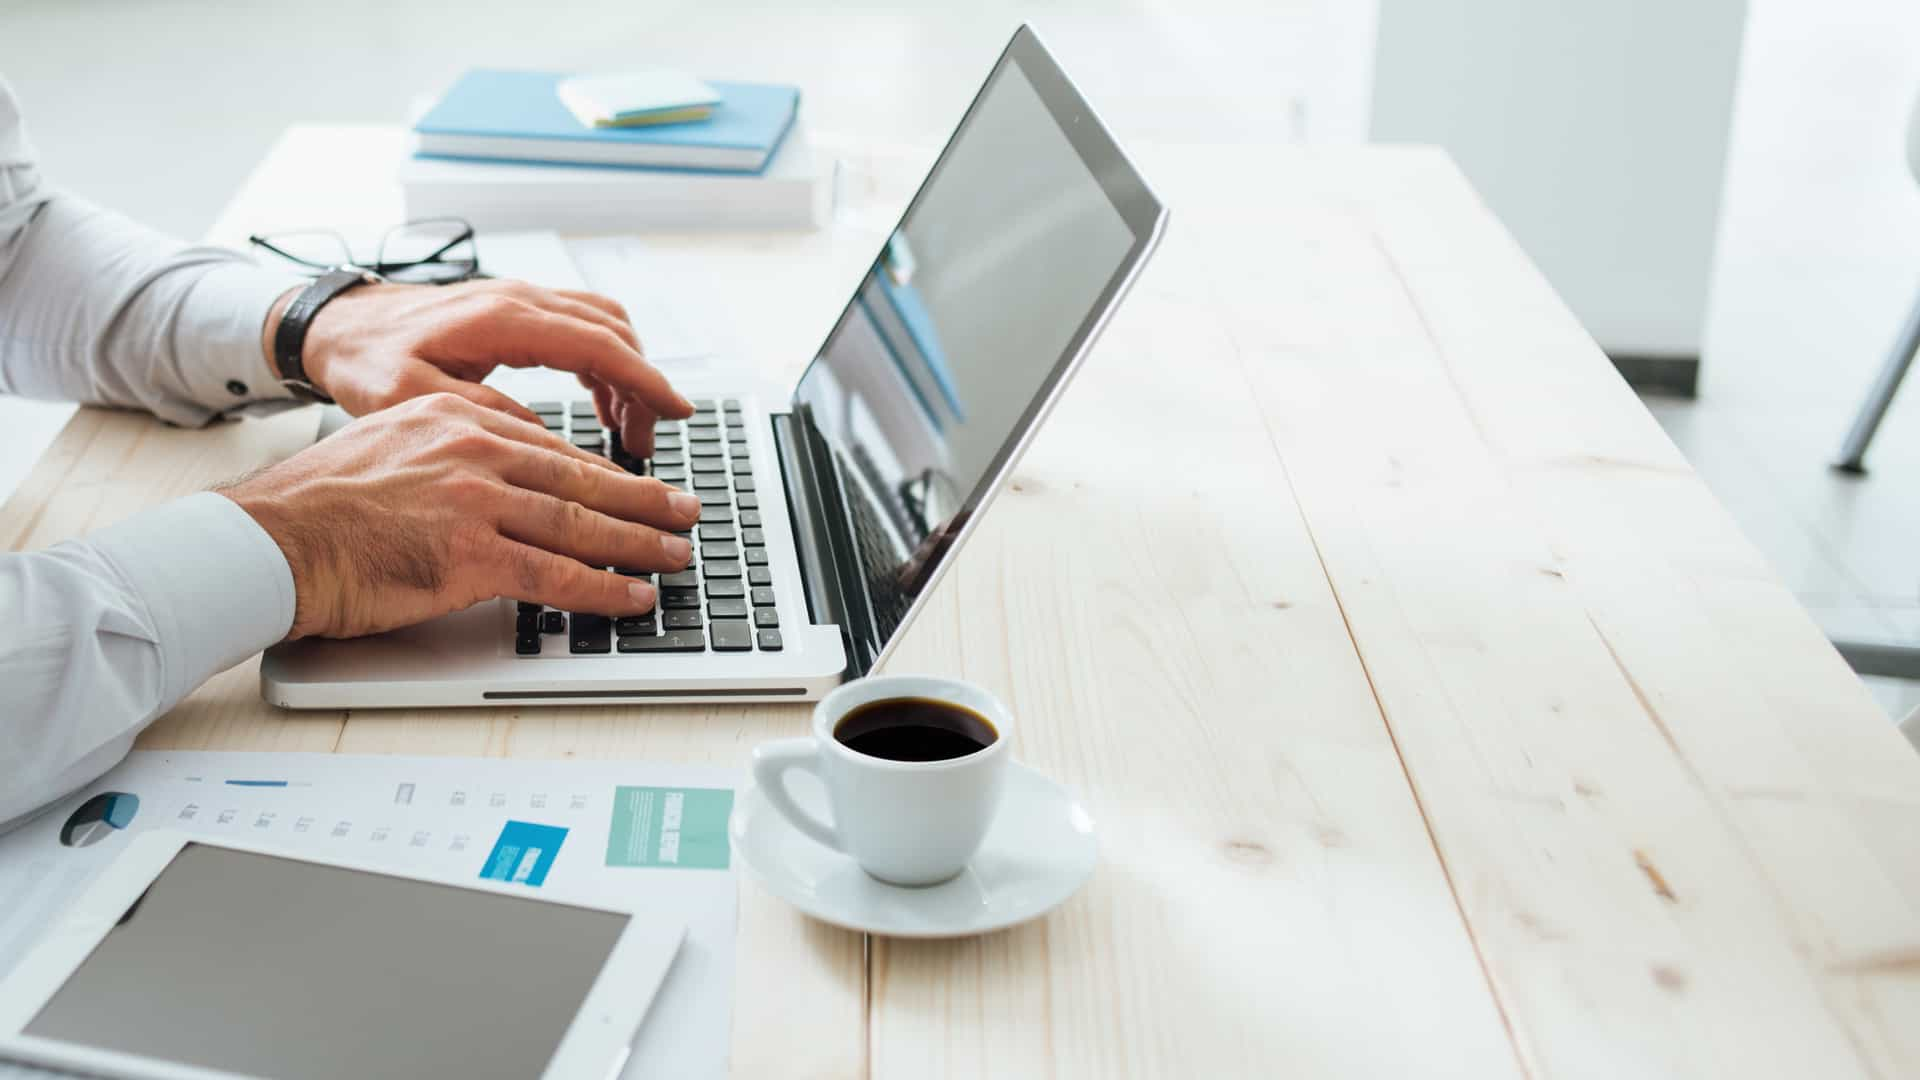 Finding website writing services